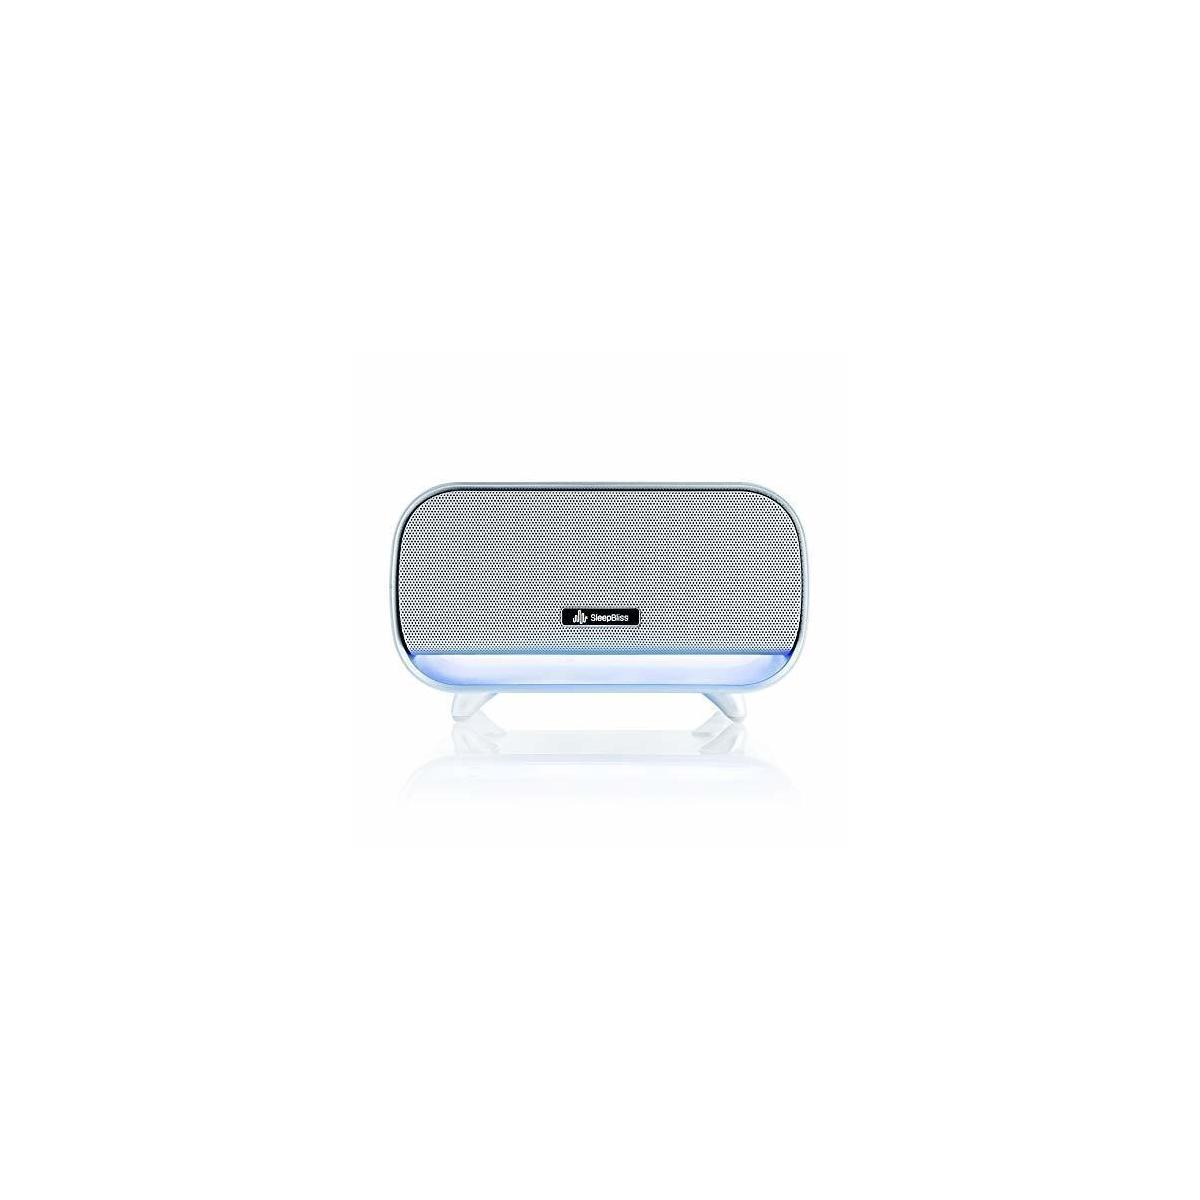 SleepBliss Portable Sleep Sound Machine   Rechargeable Noise Machines For Sleeping   24 HiFi Soothing Sounds   Negative Ion Purifier   2 Night Lights For Baby Auto-Off Timer For Tinnitus Relief Travel